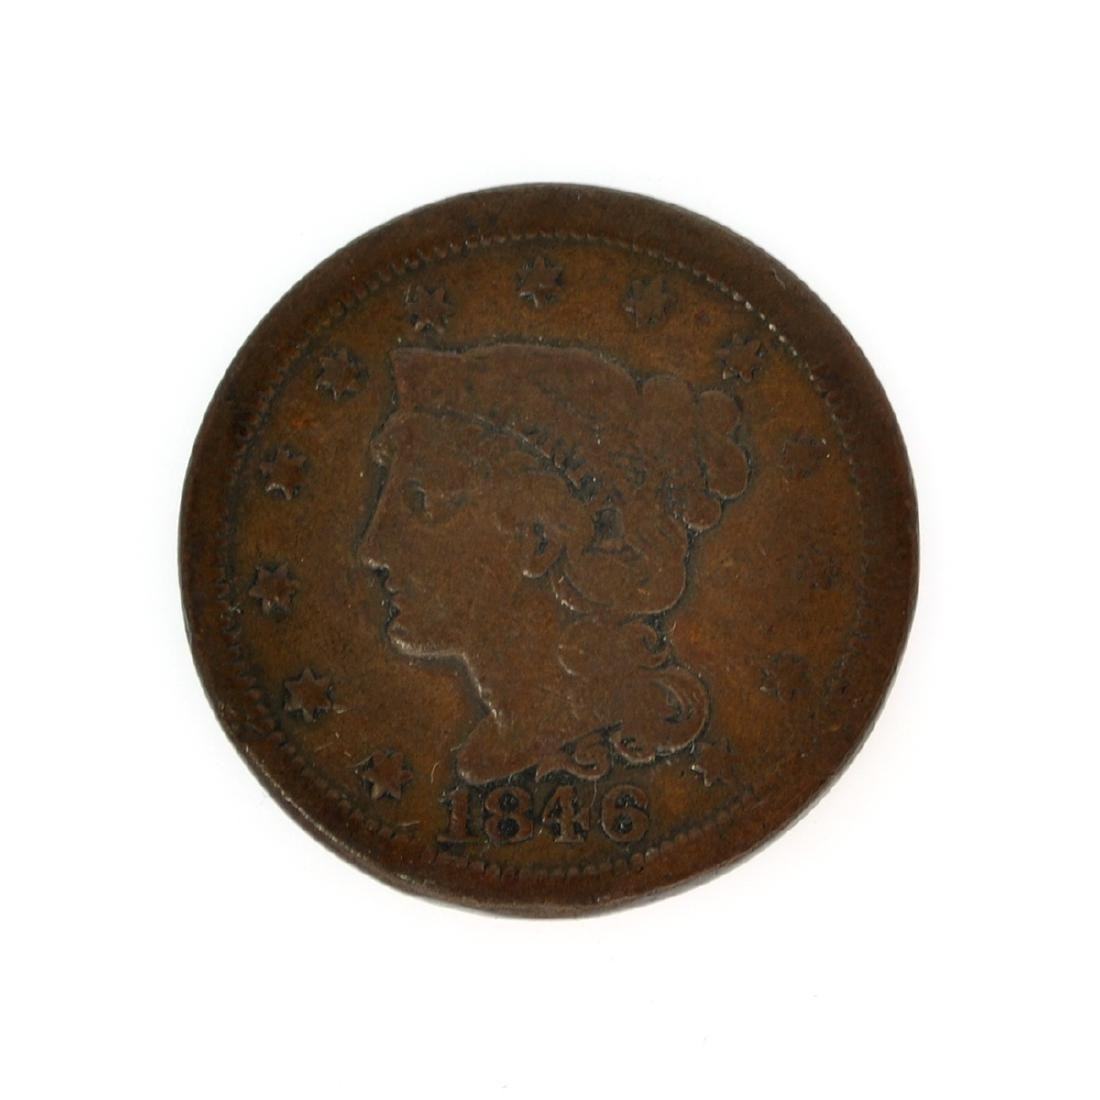 Rare 1846 Large Cent Coin